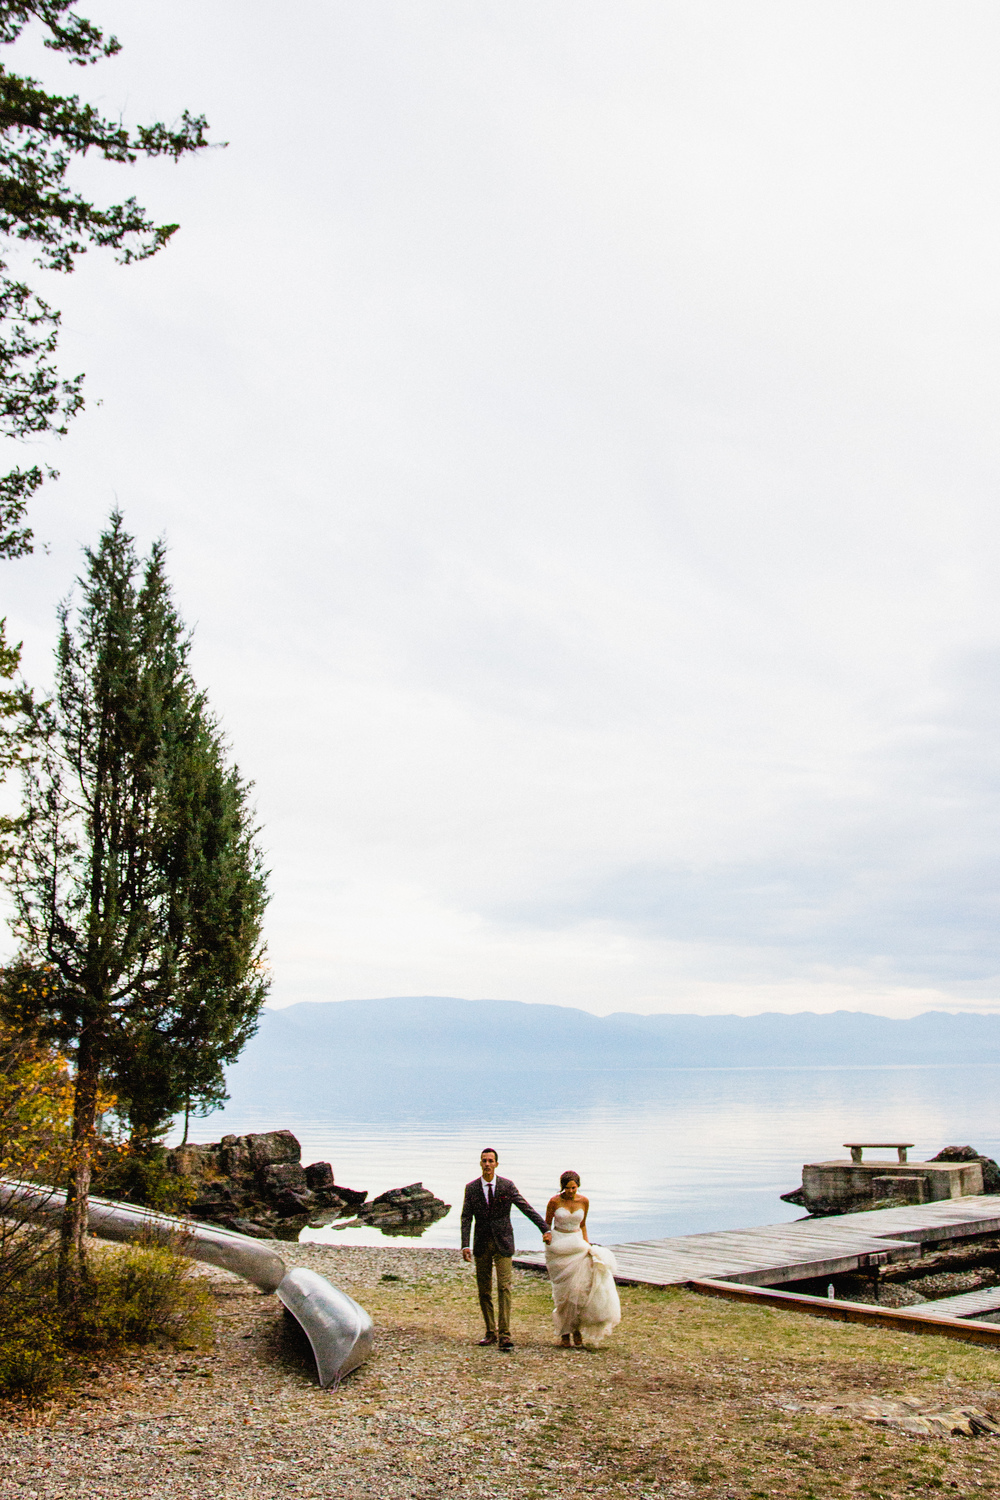 Brooke Bynum and Zach Jaszczak's Montana Wedding-62.jpg